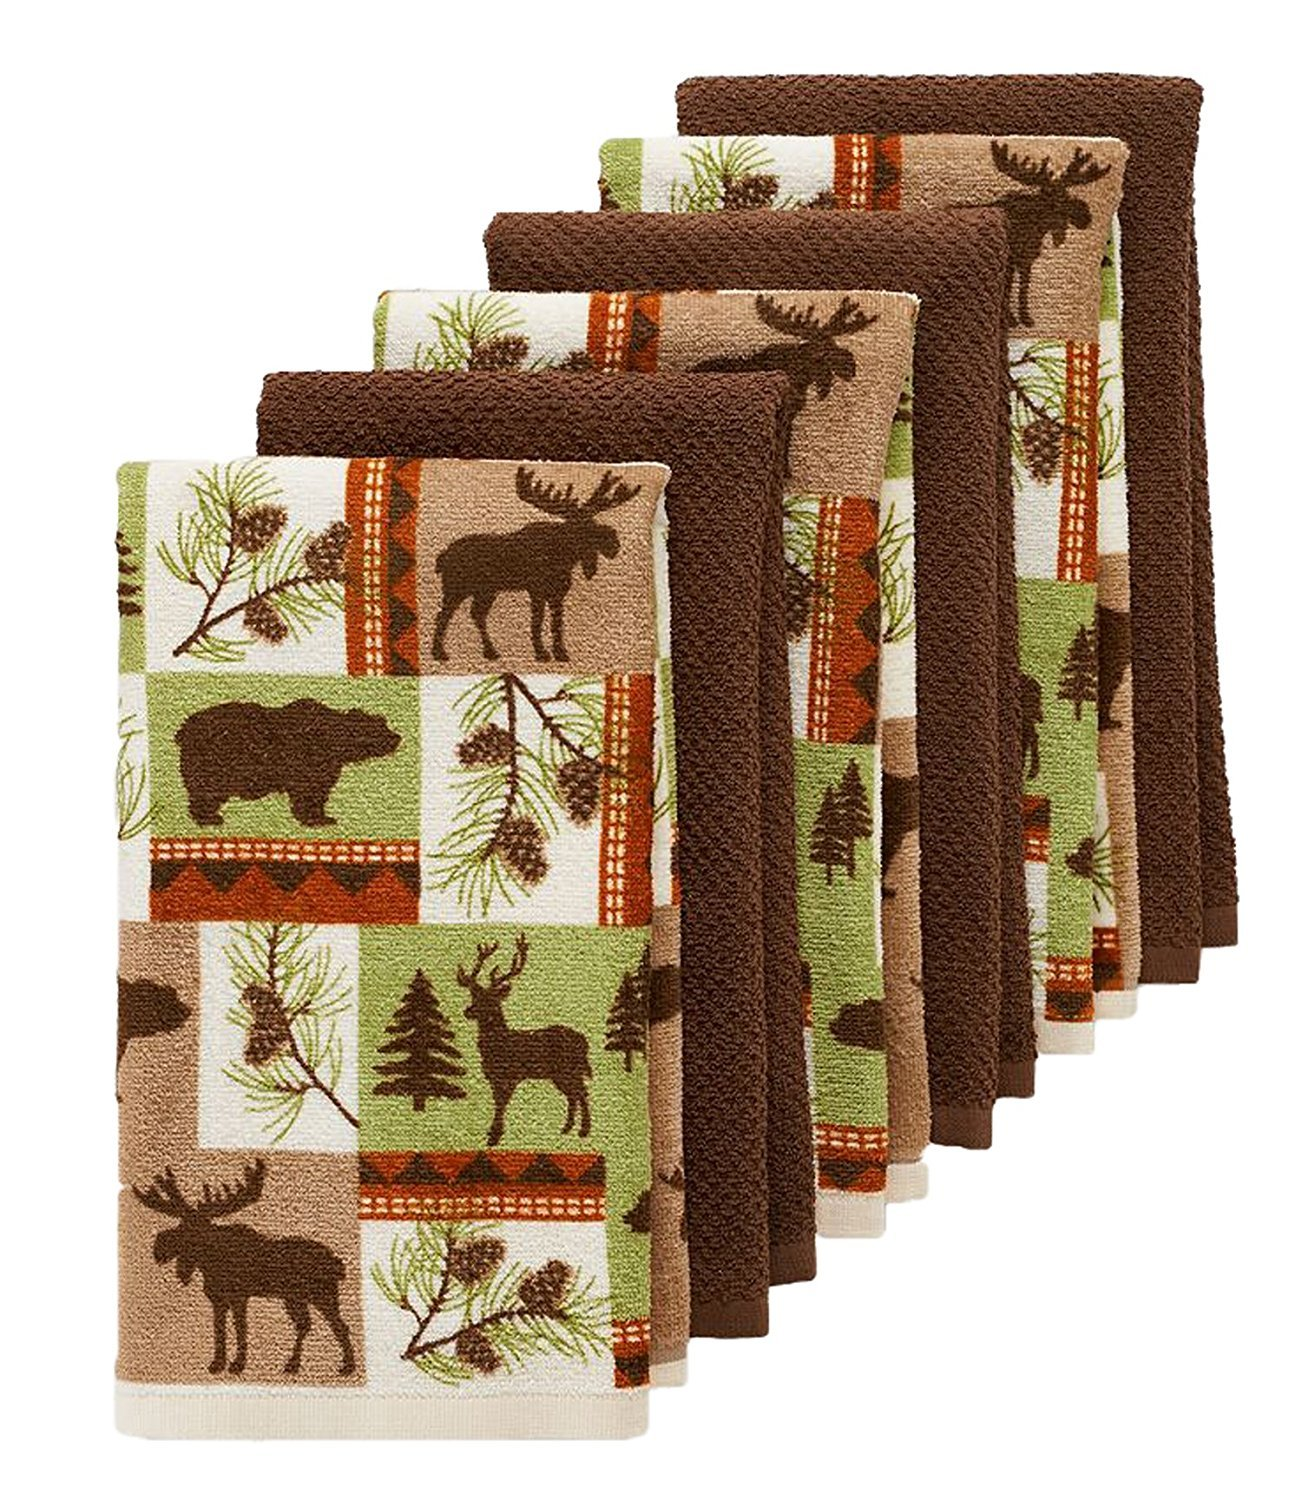 6 pc wildlife kitchen towel set perfect for your